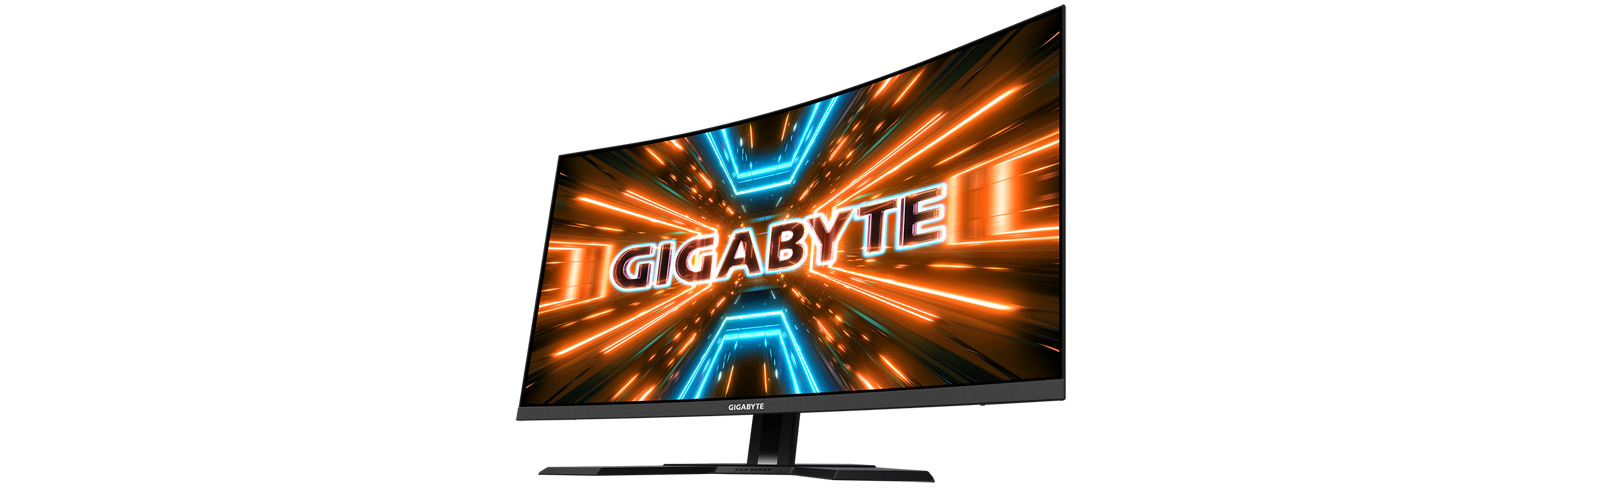 """The Gigabyte M32QC is here with a 31.5"""" QHD curved VA display, 170Hz refresh rate"""